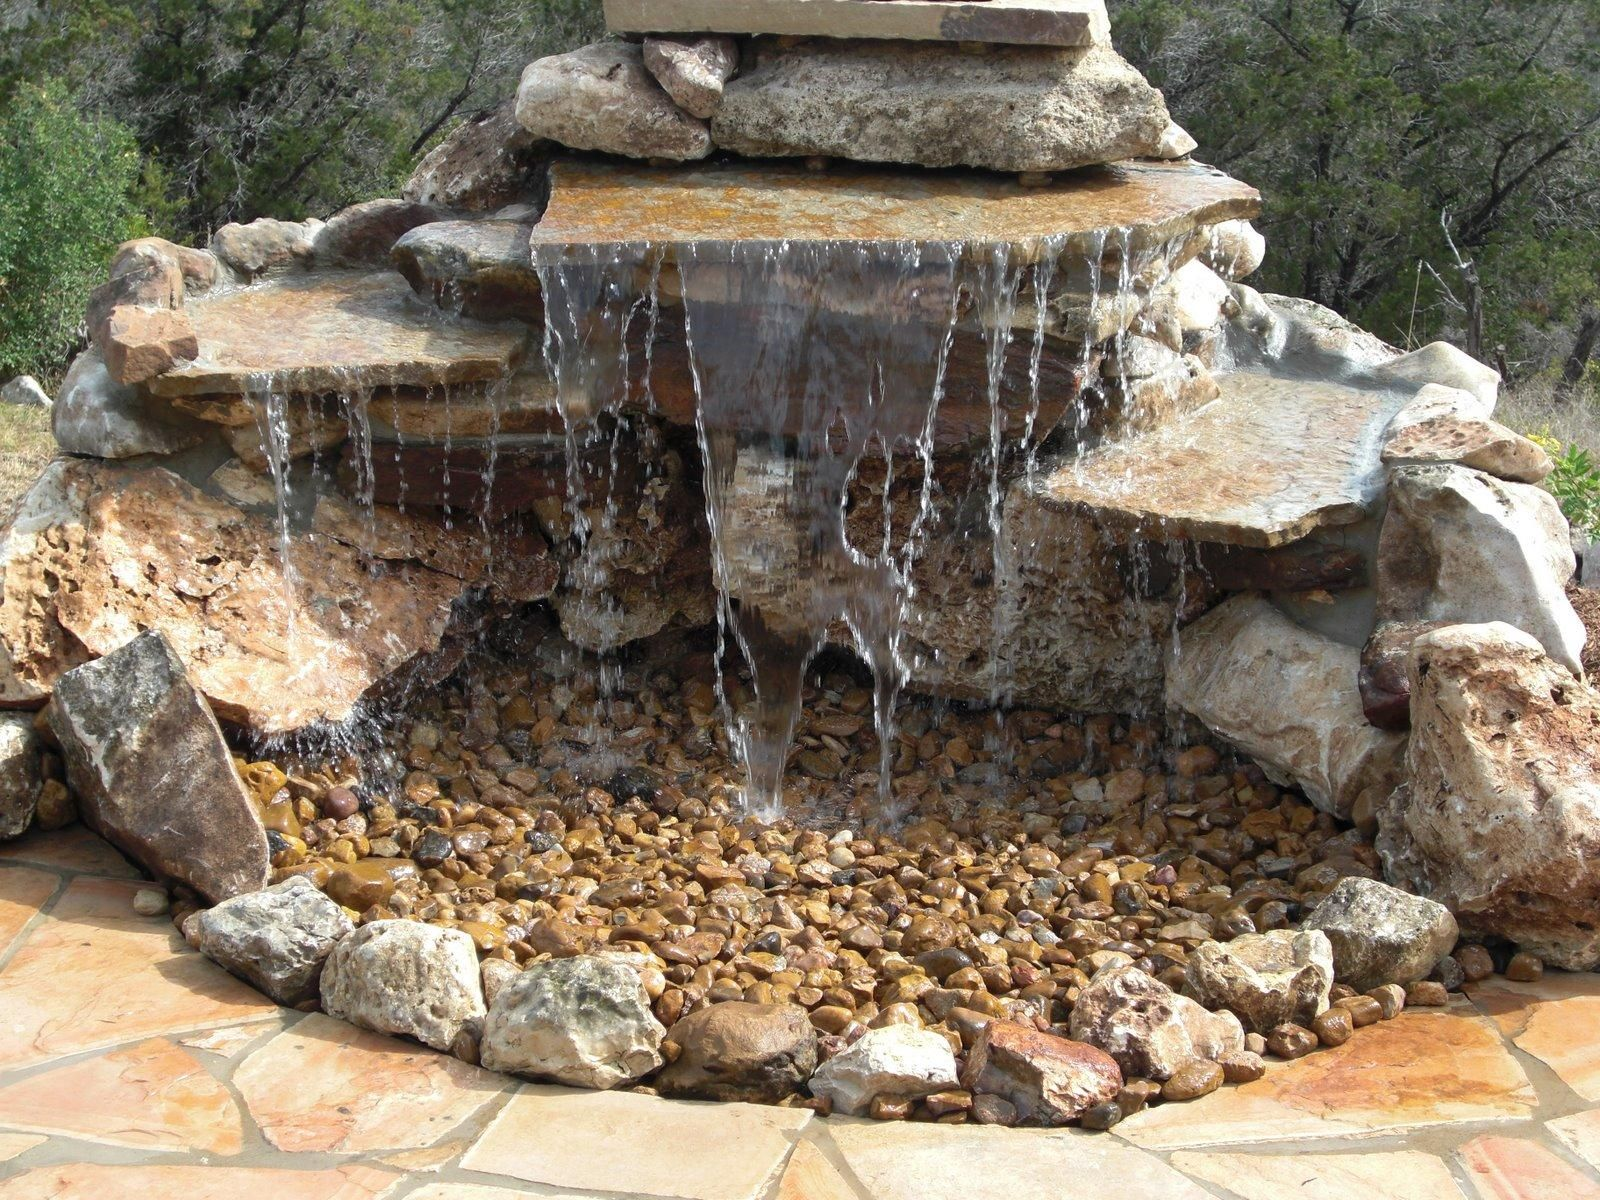 Directions For Installing A Pondless Waterfall Without Buying An Expensive Kit Diy Waterfall